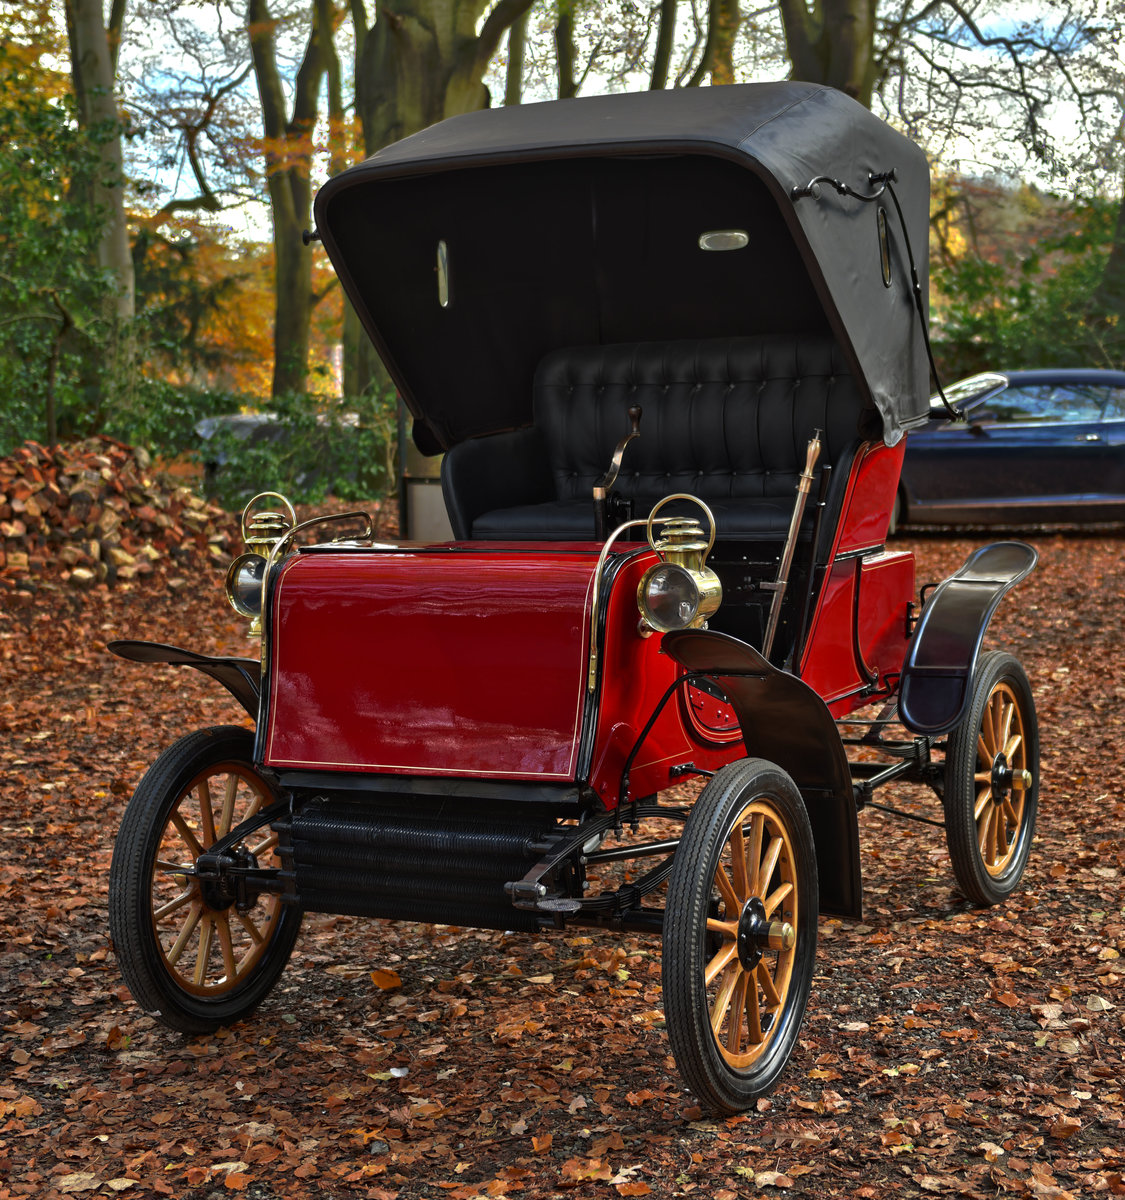 1903 STEVENS-DURYEA 7hp MODEL L RUNABOUT For Sale (picture 5 of 12)